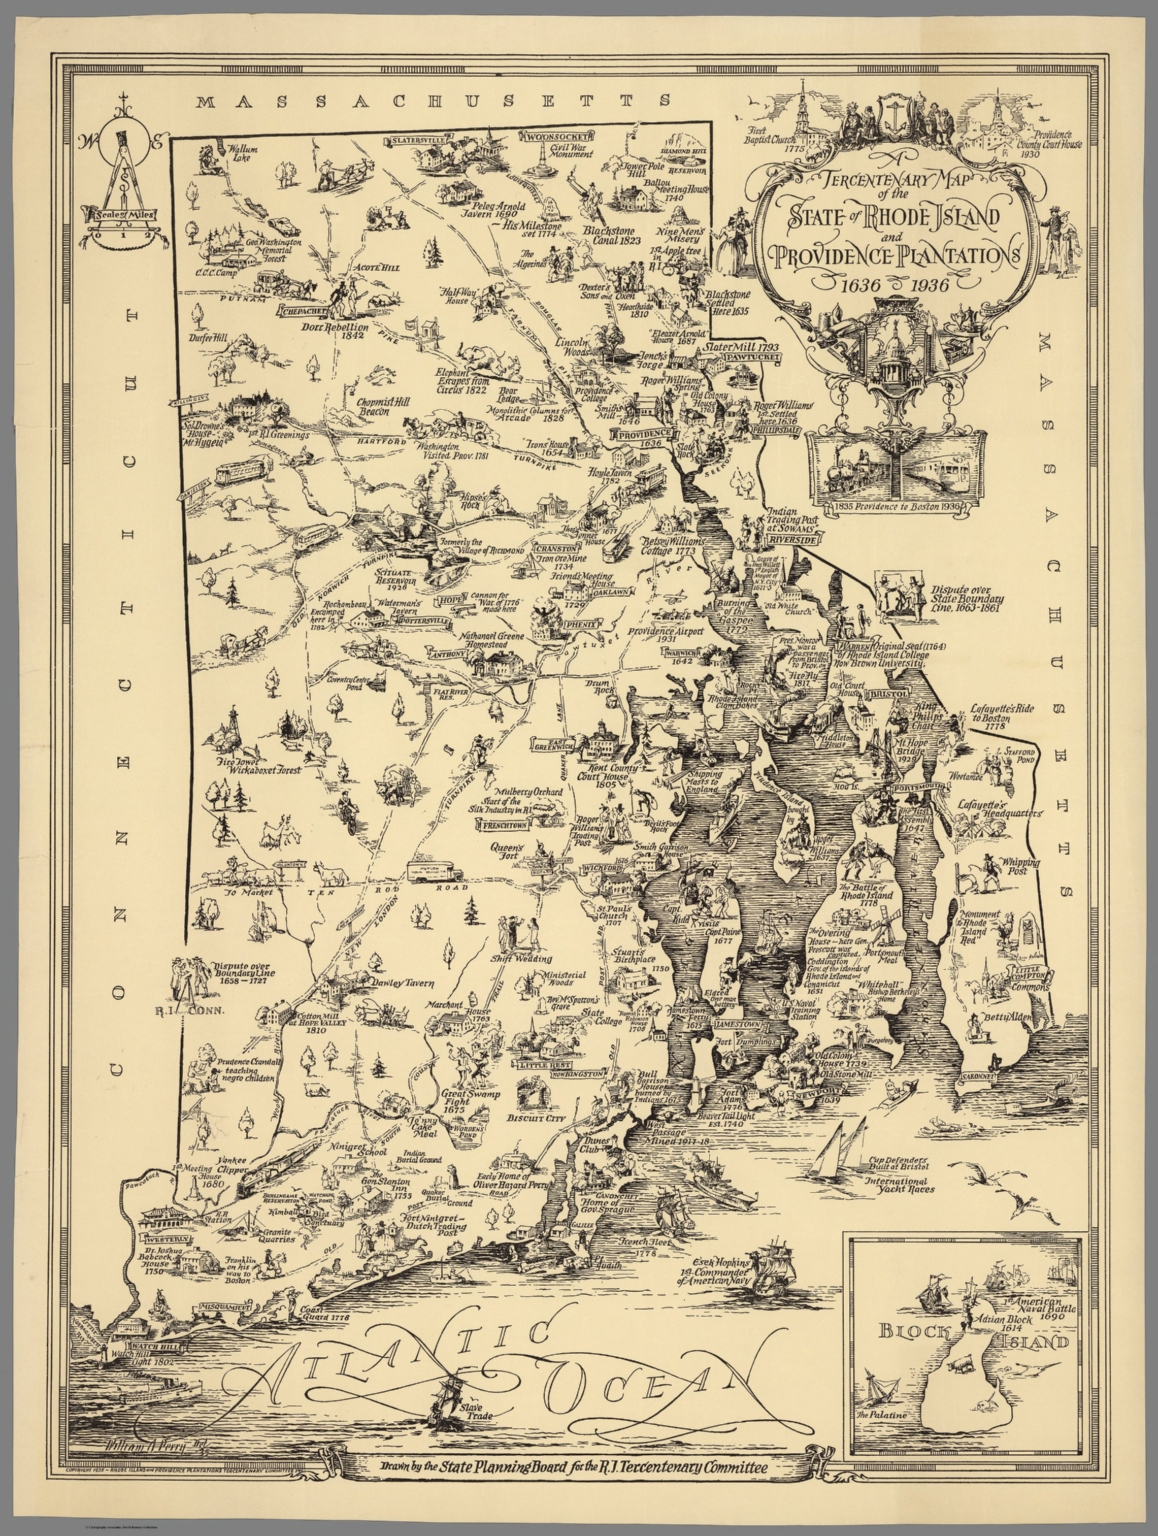 Tercentenary Map of the State of Rhode Island and Providence Plantations  1636 - 1936.